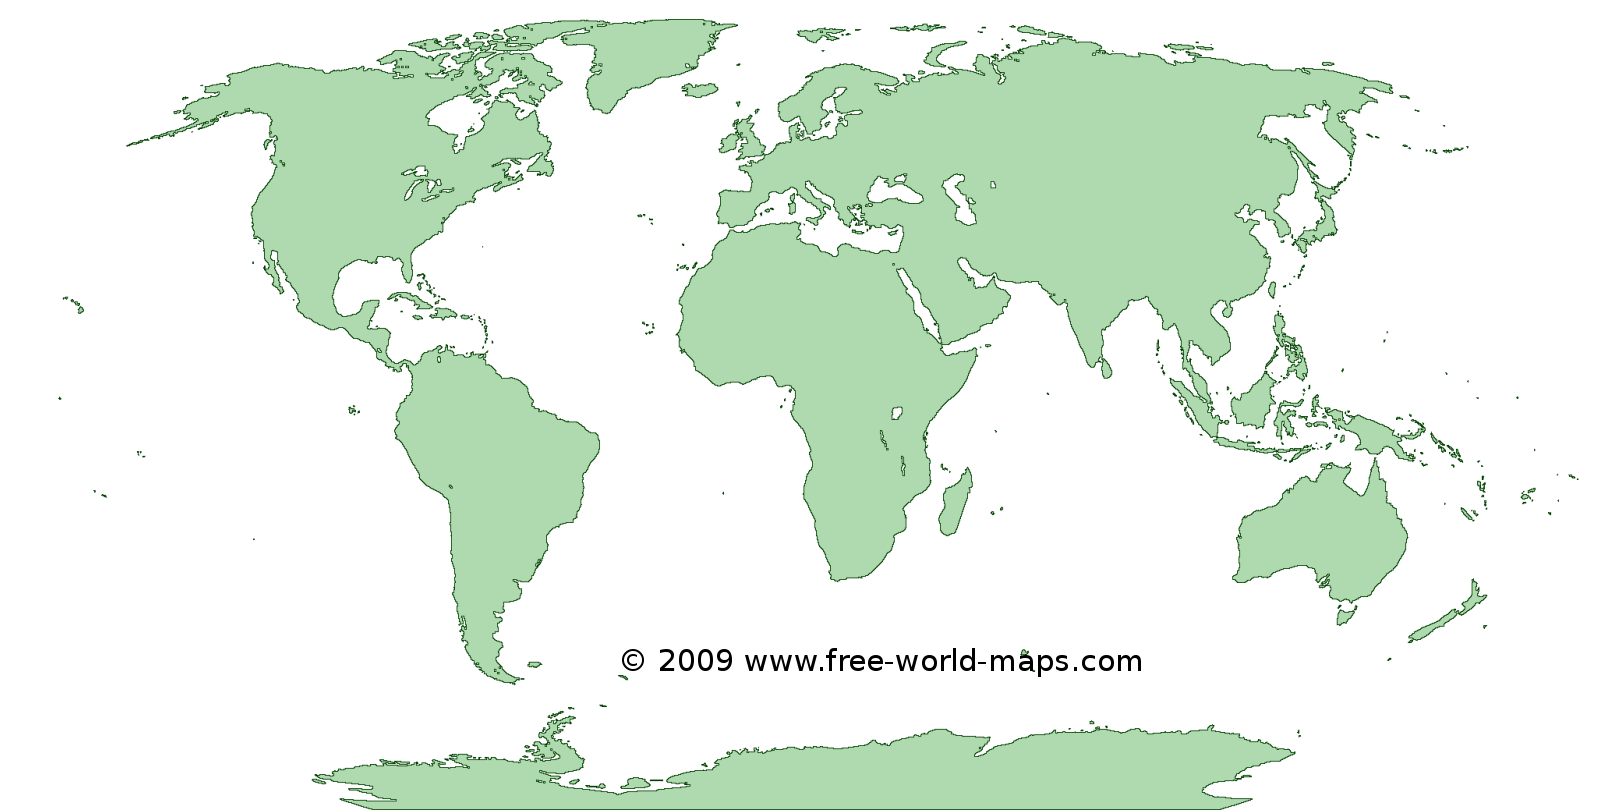 Printable Greentransparent Blank Outline World Map C Free - Unmarked map